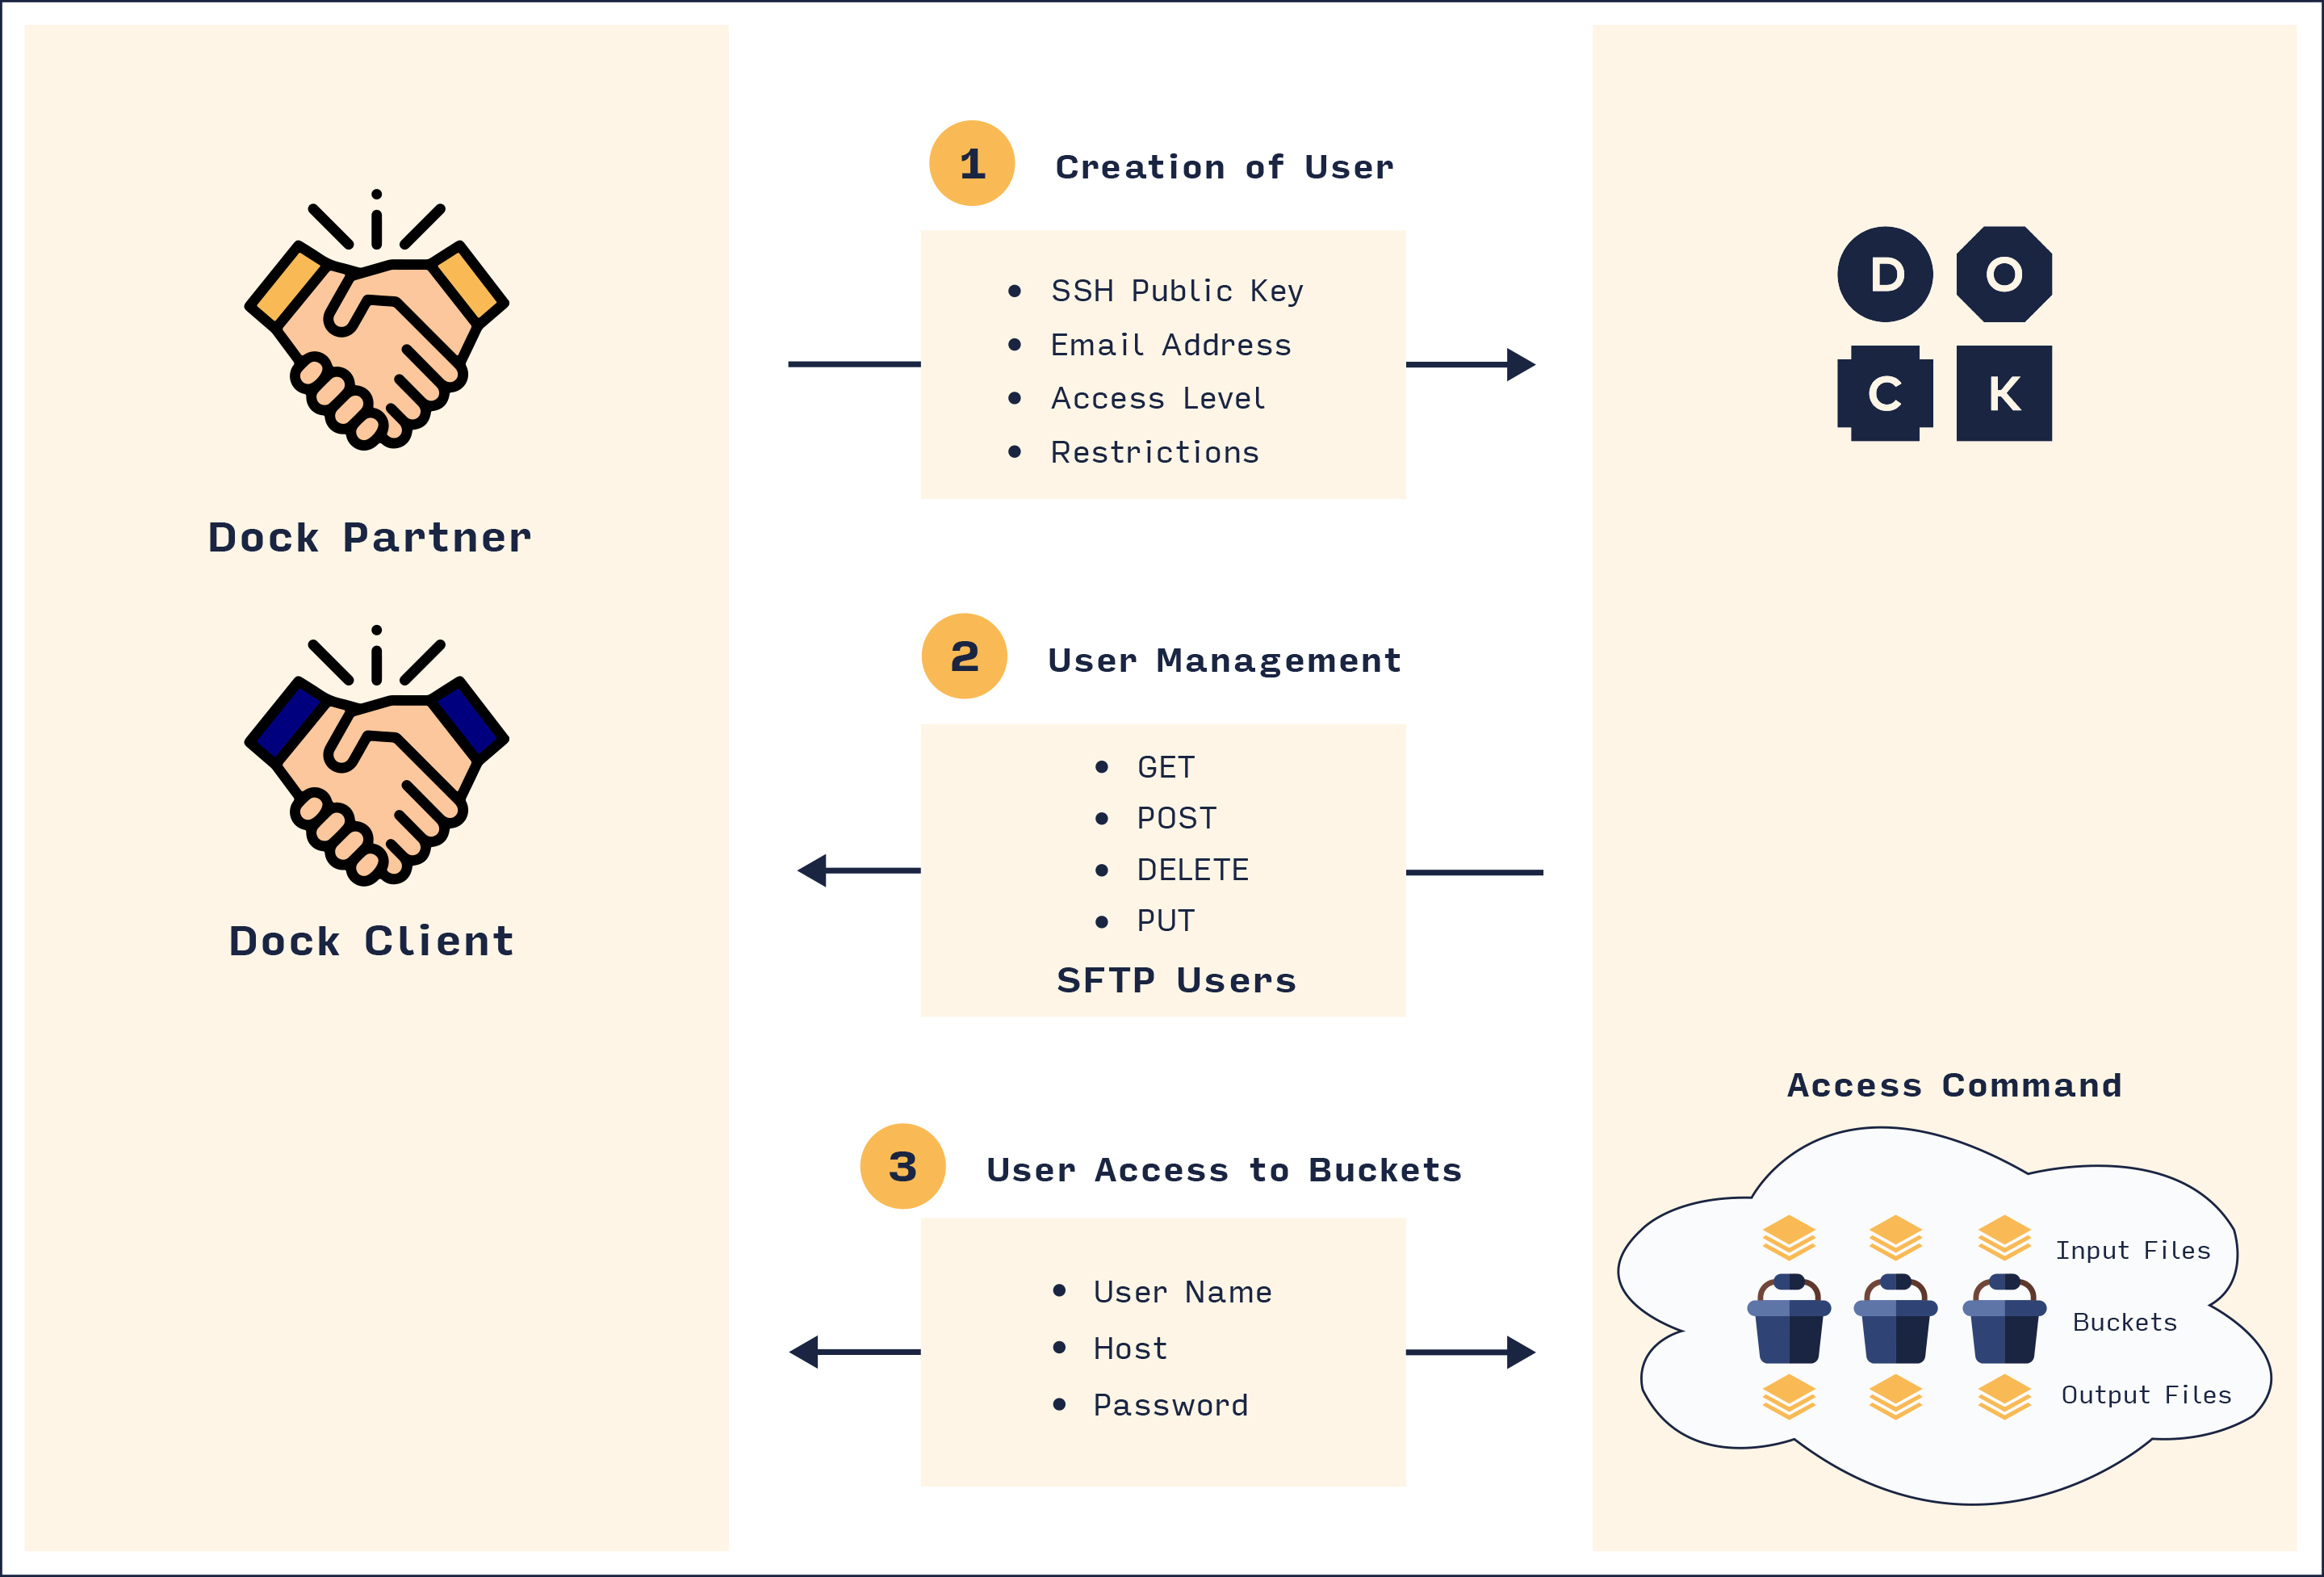 Creation and Management of SFTP Users for Bucket Access.